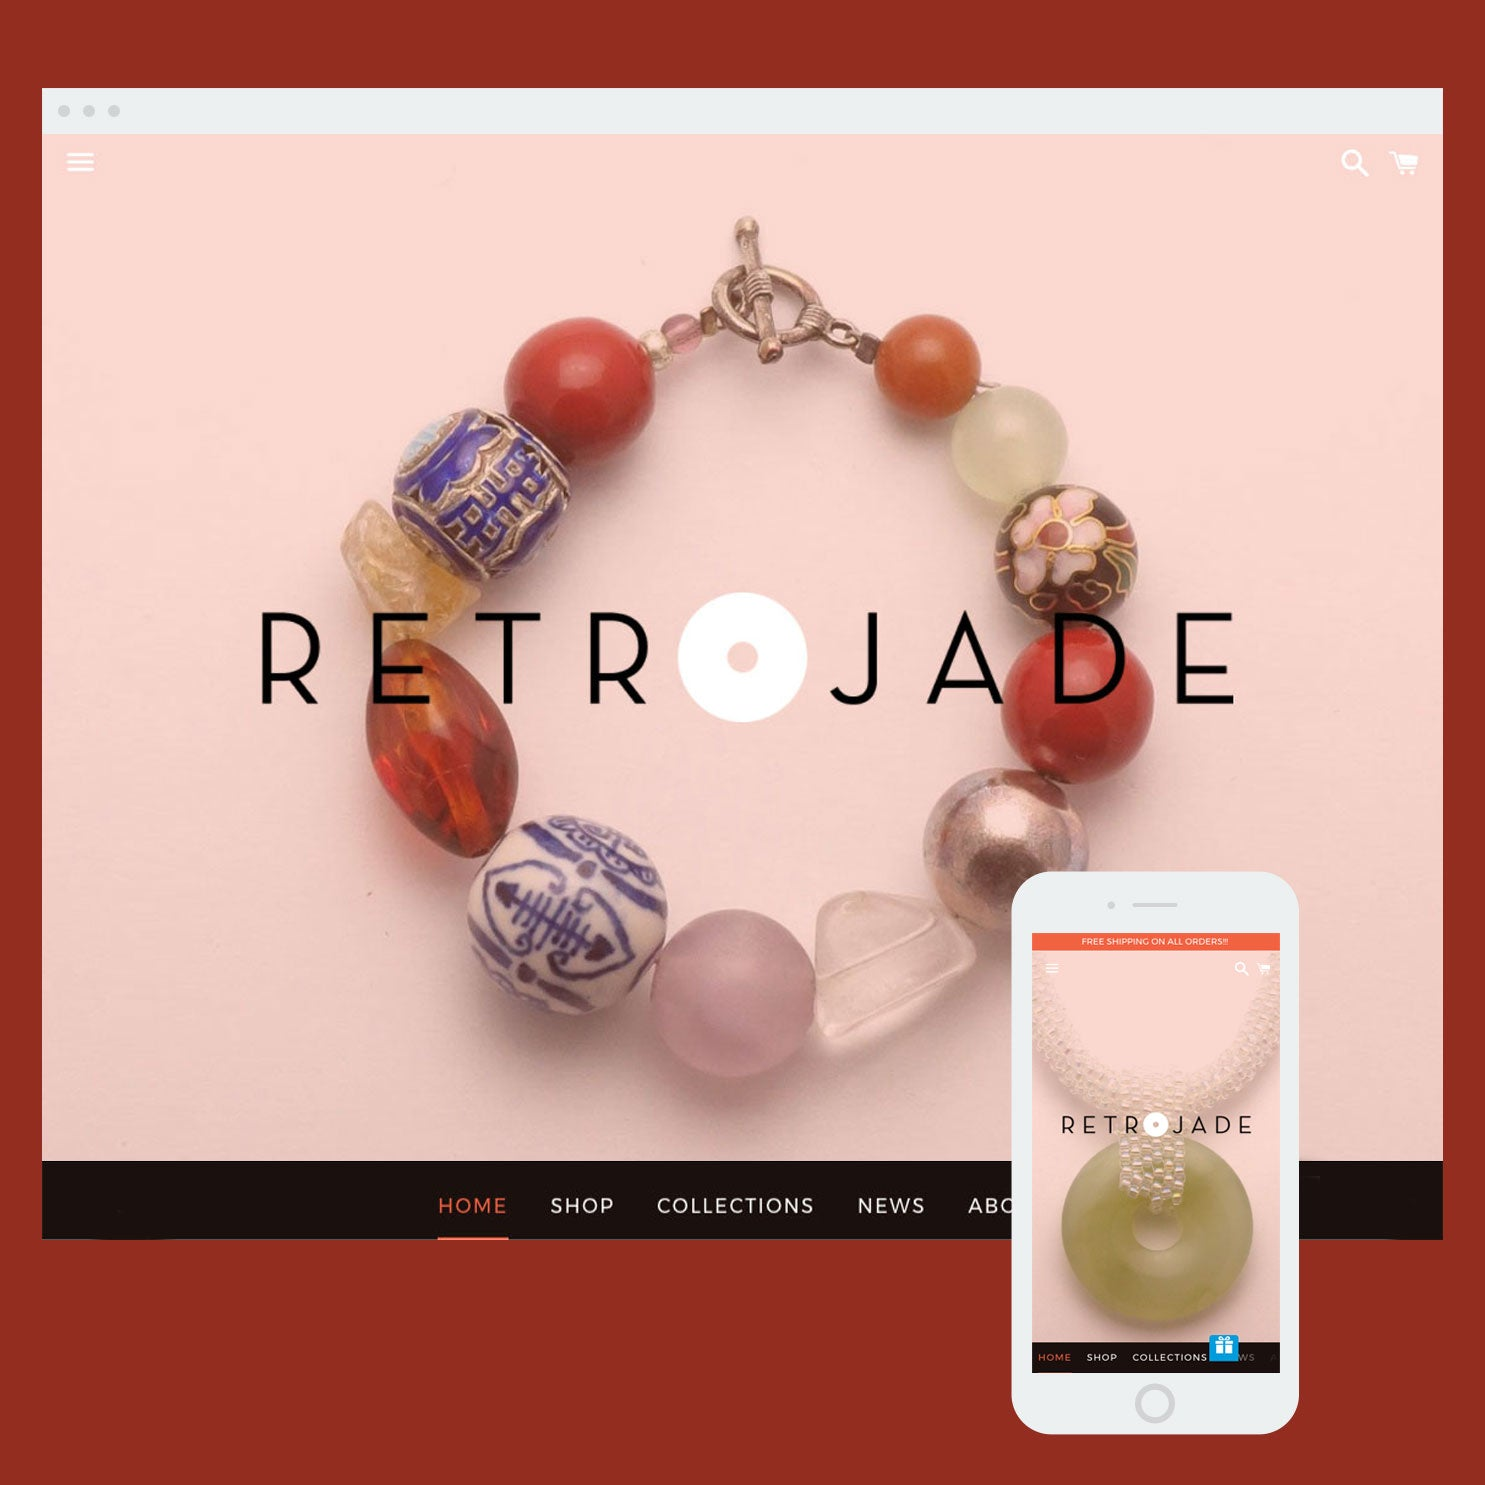 Retrojade - Shopify store by Cooee Commerce